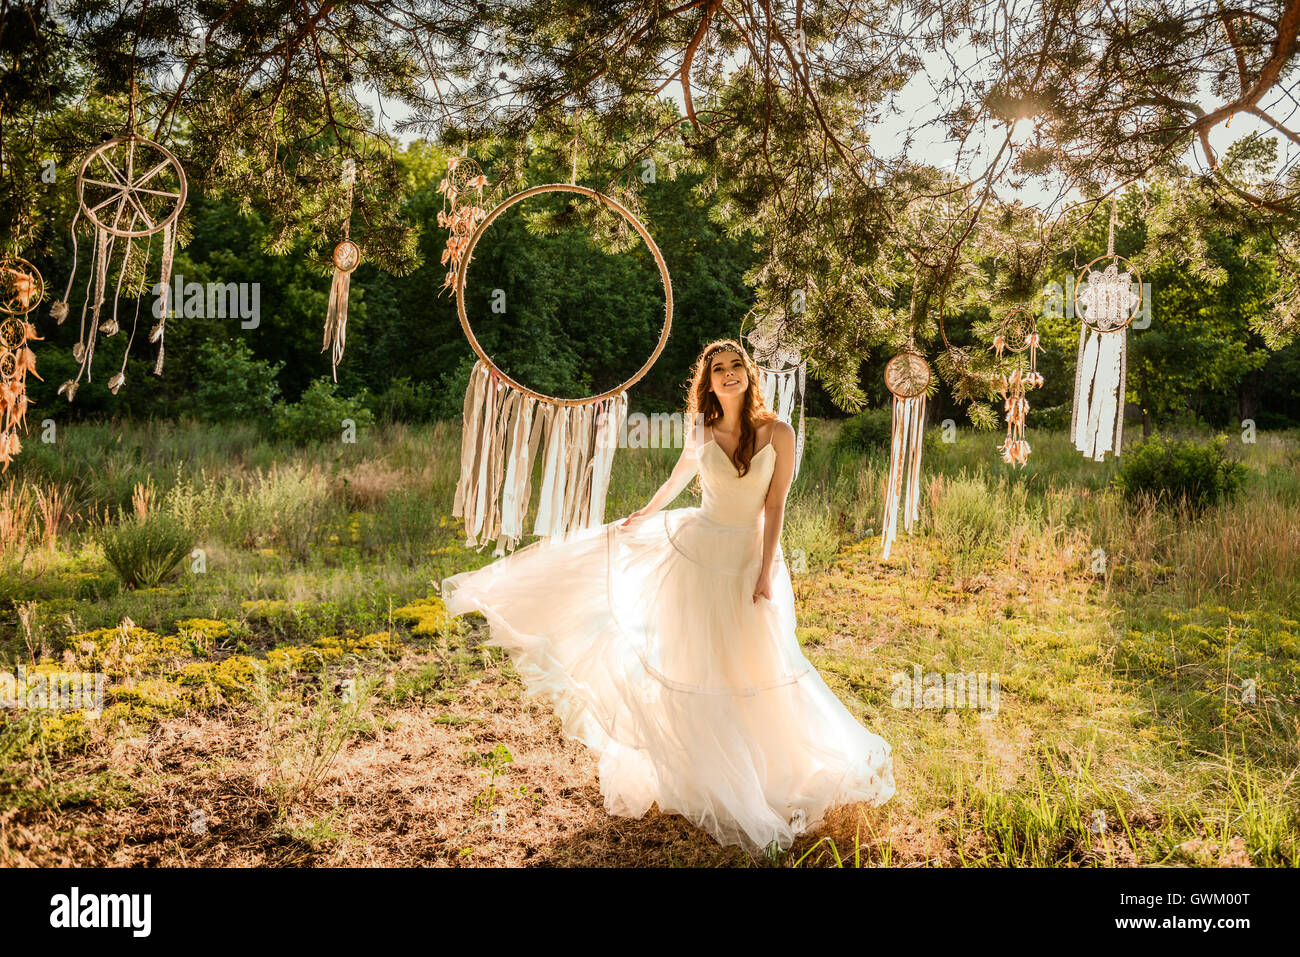 young redheaded girl smiling, Girl in the forest, beautiful redheaded young girl, Girl near dreamcatcher - Stock Image